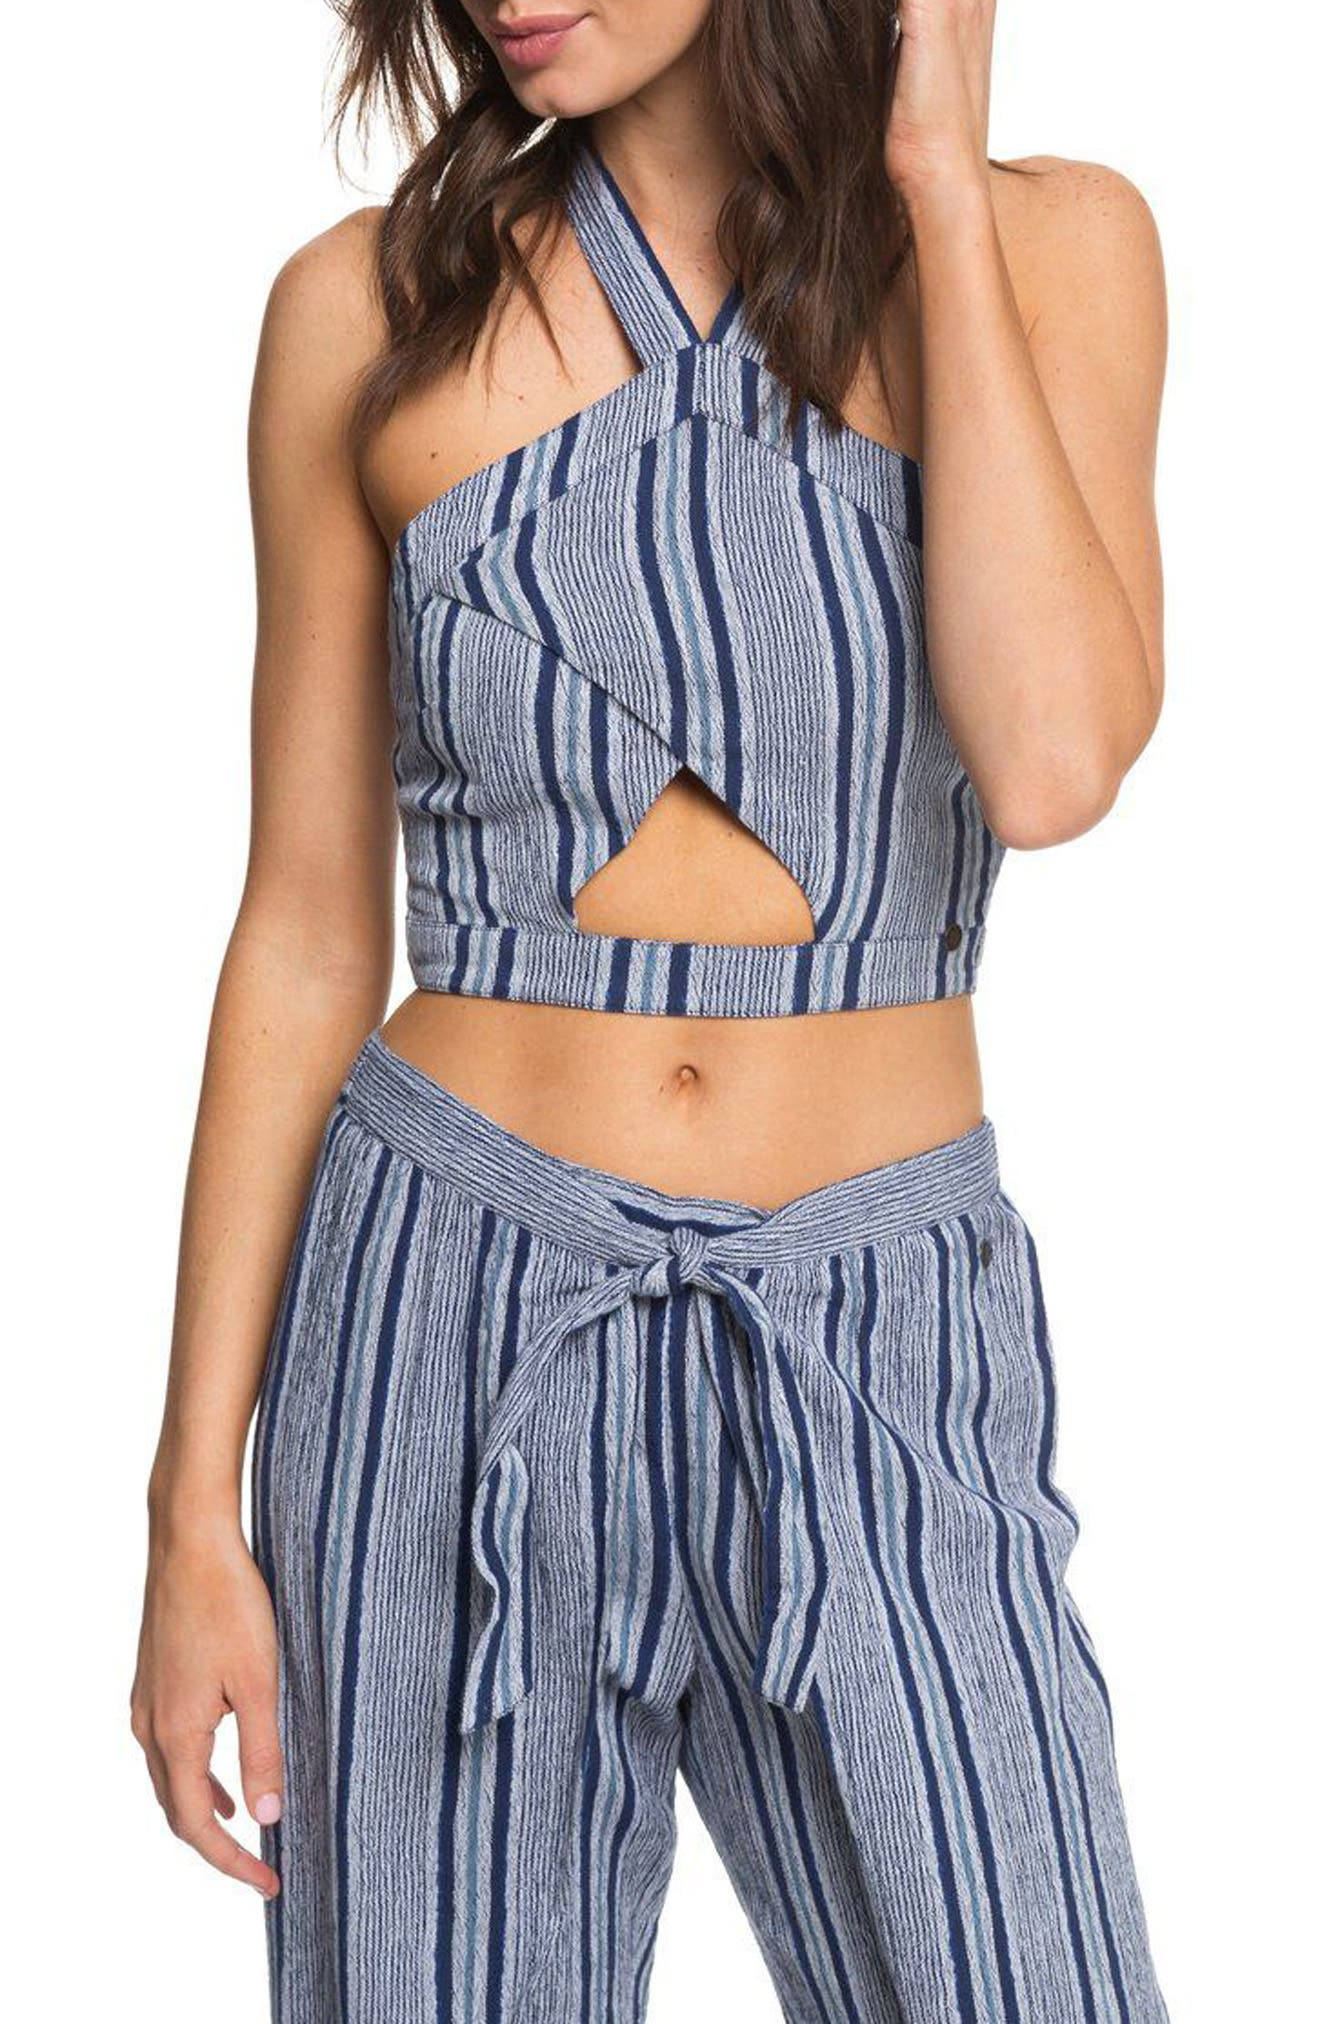 Jessa Cutout Halter Crop Top,                             Main thumbnail 1, color,                             405